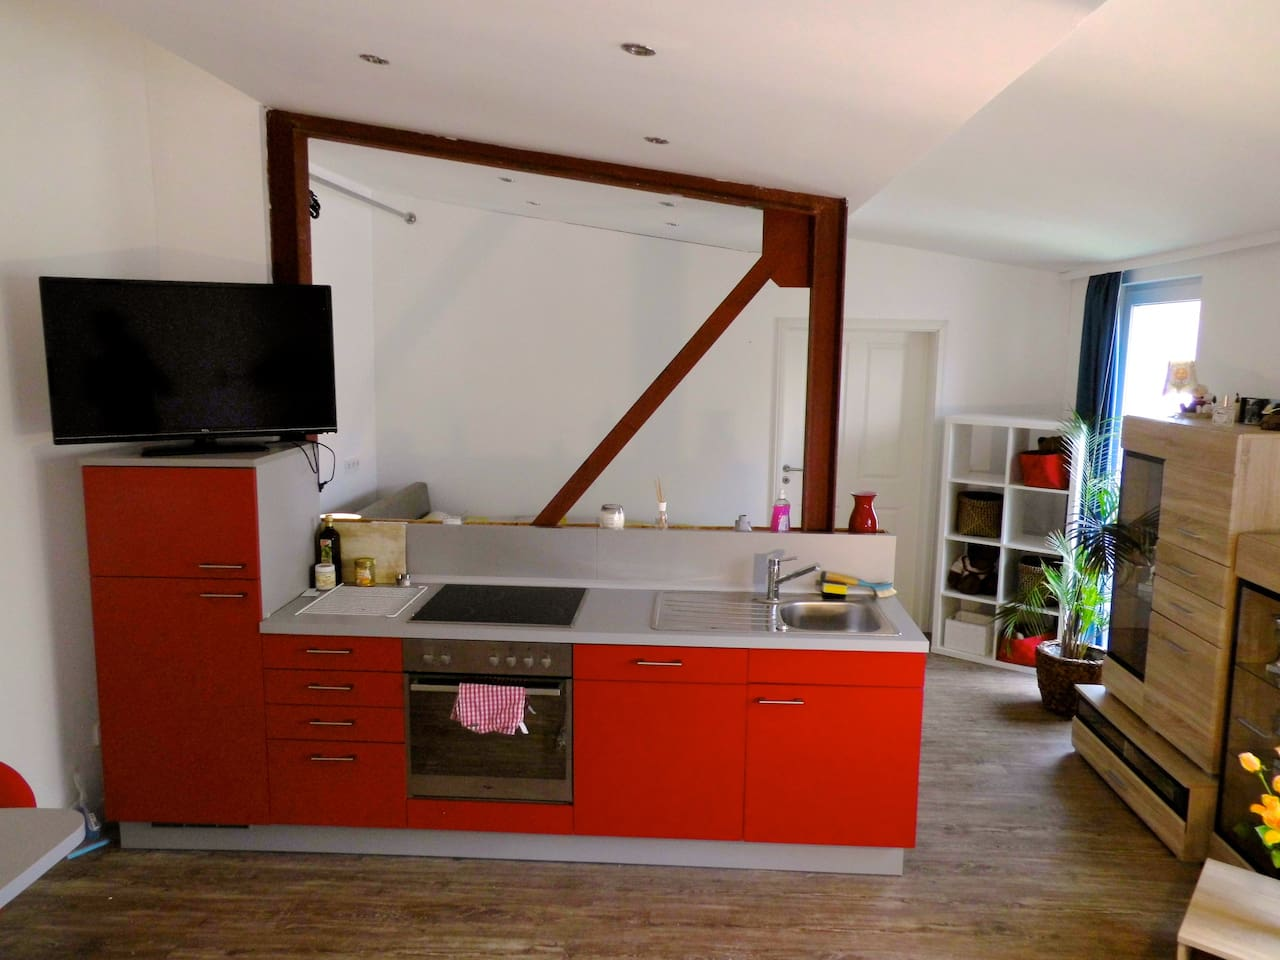 Brand new apartment in the city center of Hannover. Feel free to use the kitchen, several grocery stores are just minutes away